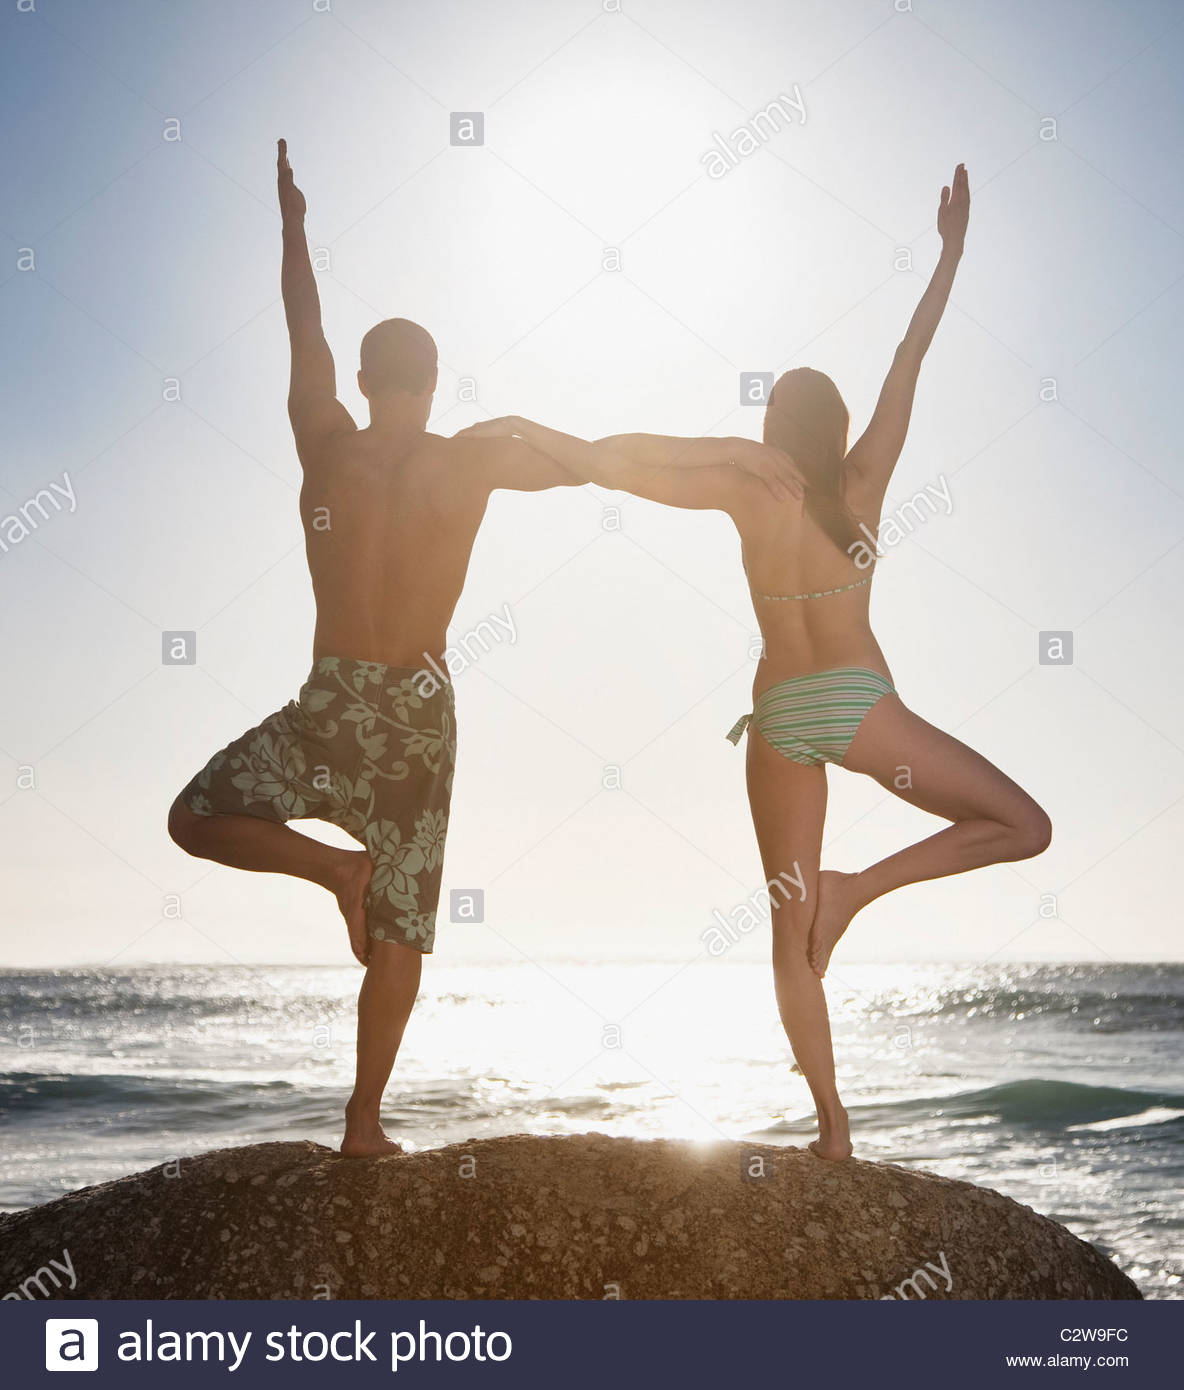 Couple en équilibre sur un pied ensemble au beach Photo Stock